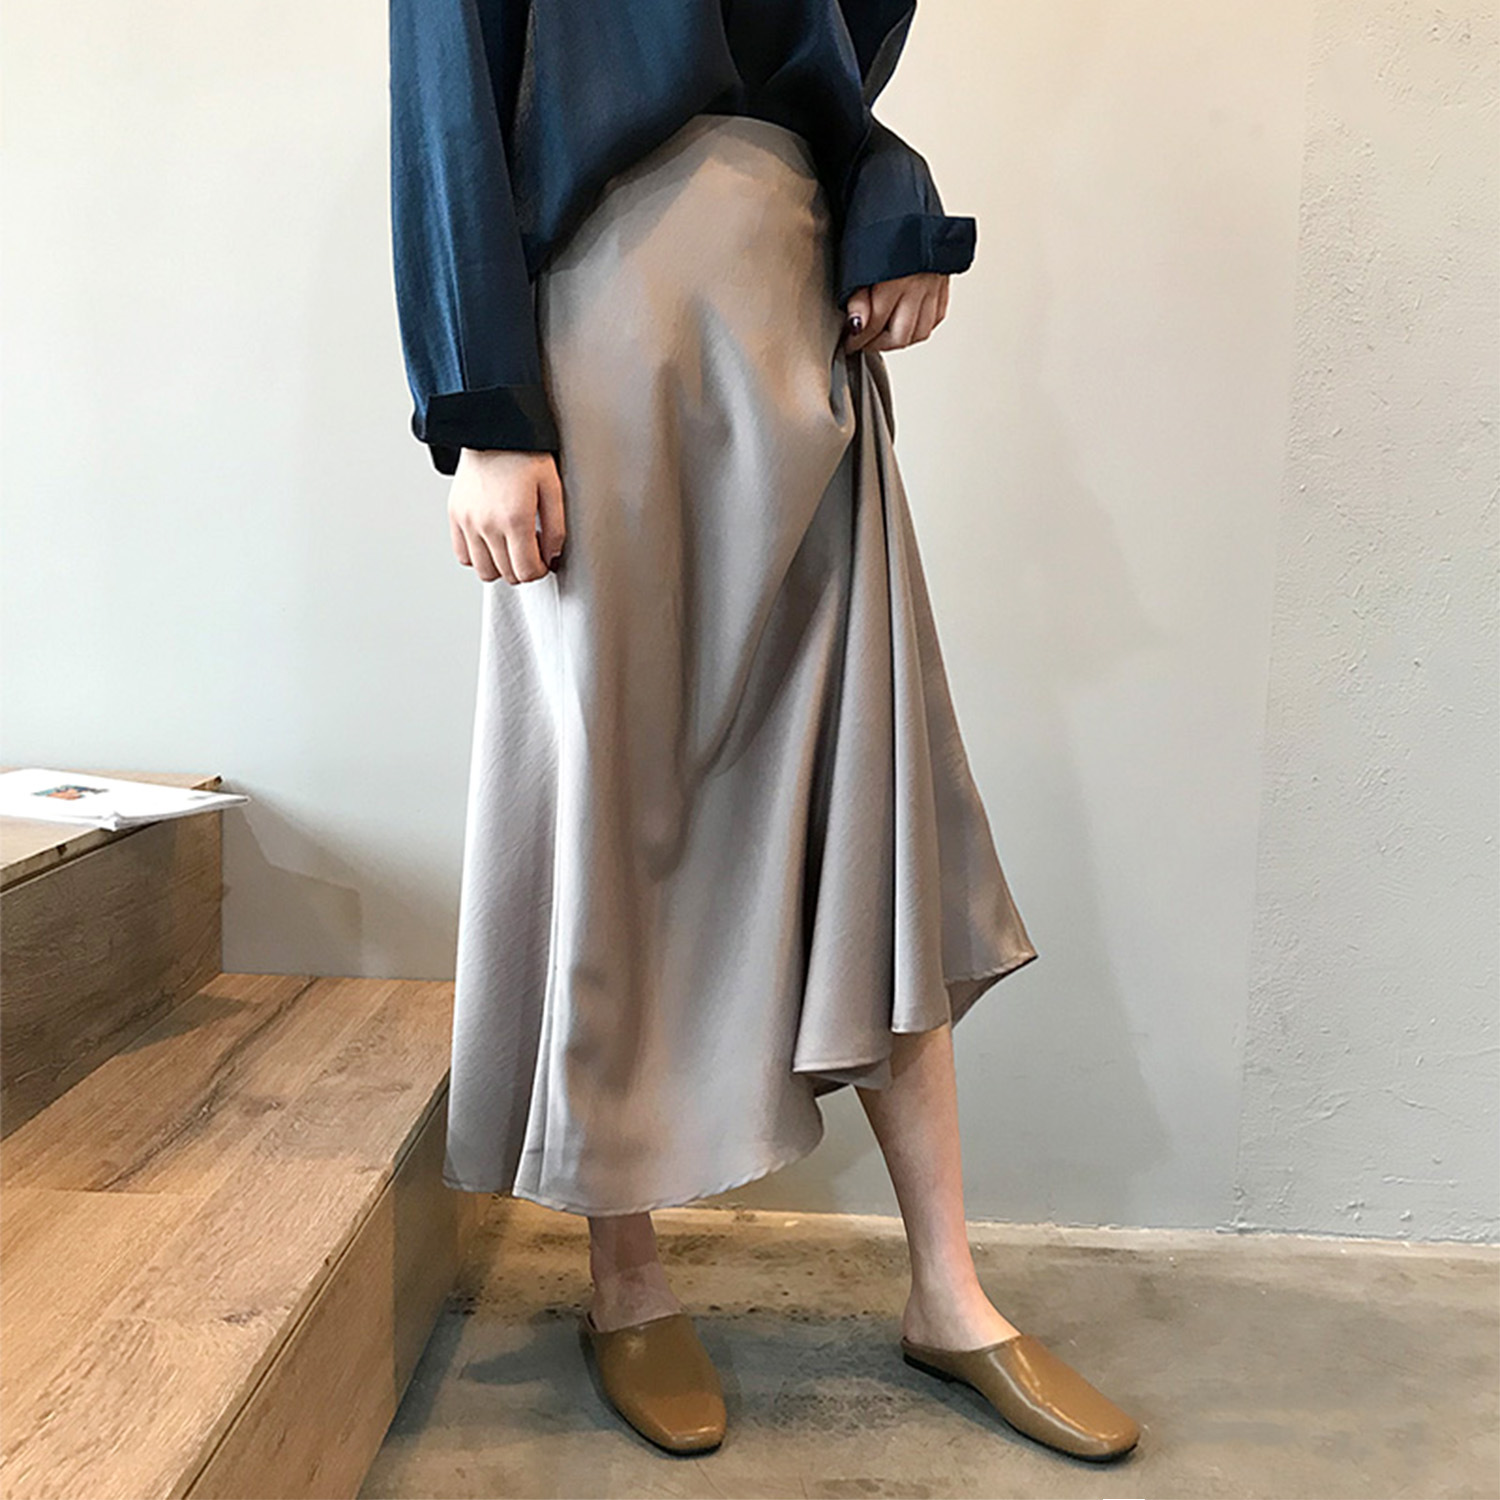 Yanshuang 2020 autumn new satin high waist skirt with hip fishtail skirt retro skirt long skirt fema